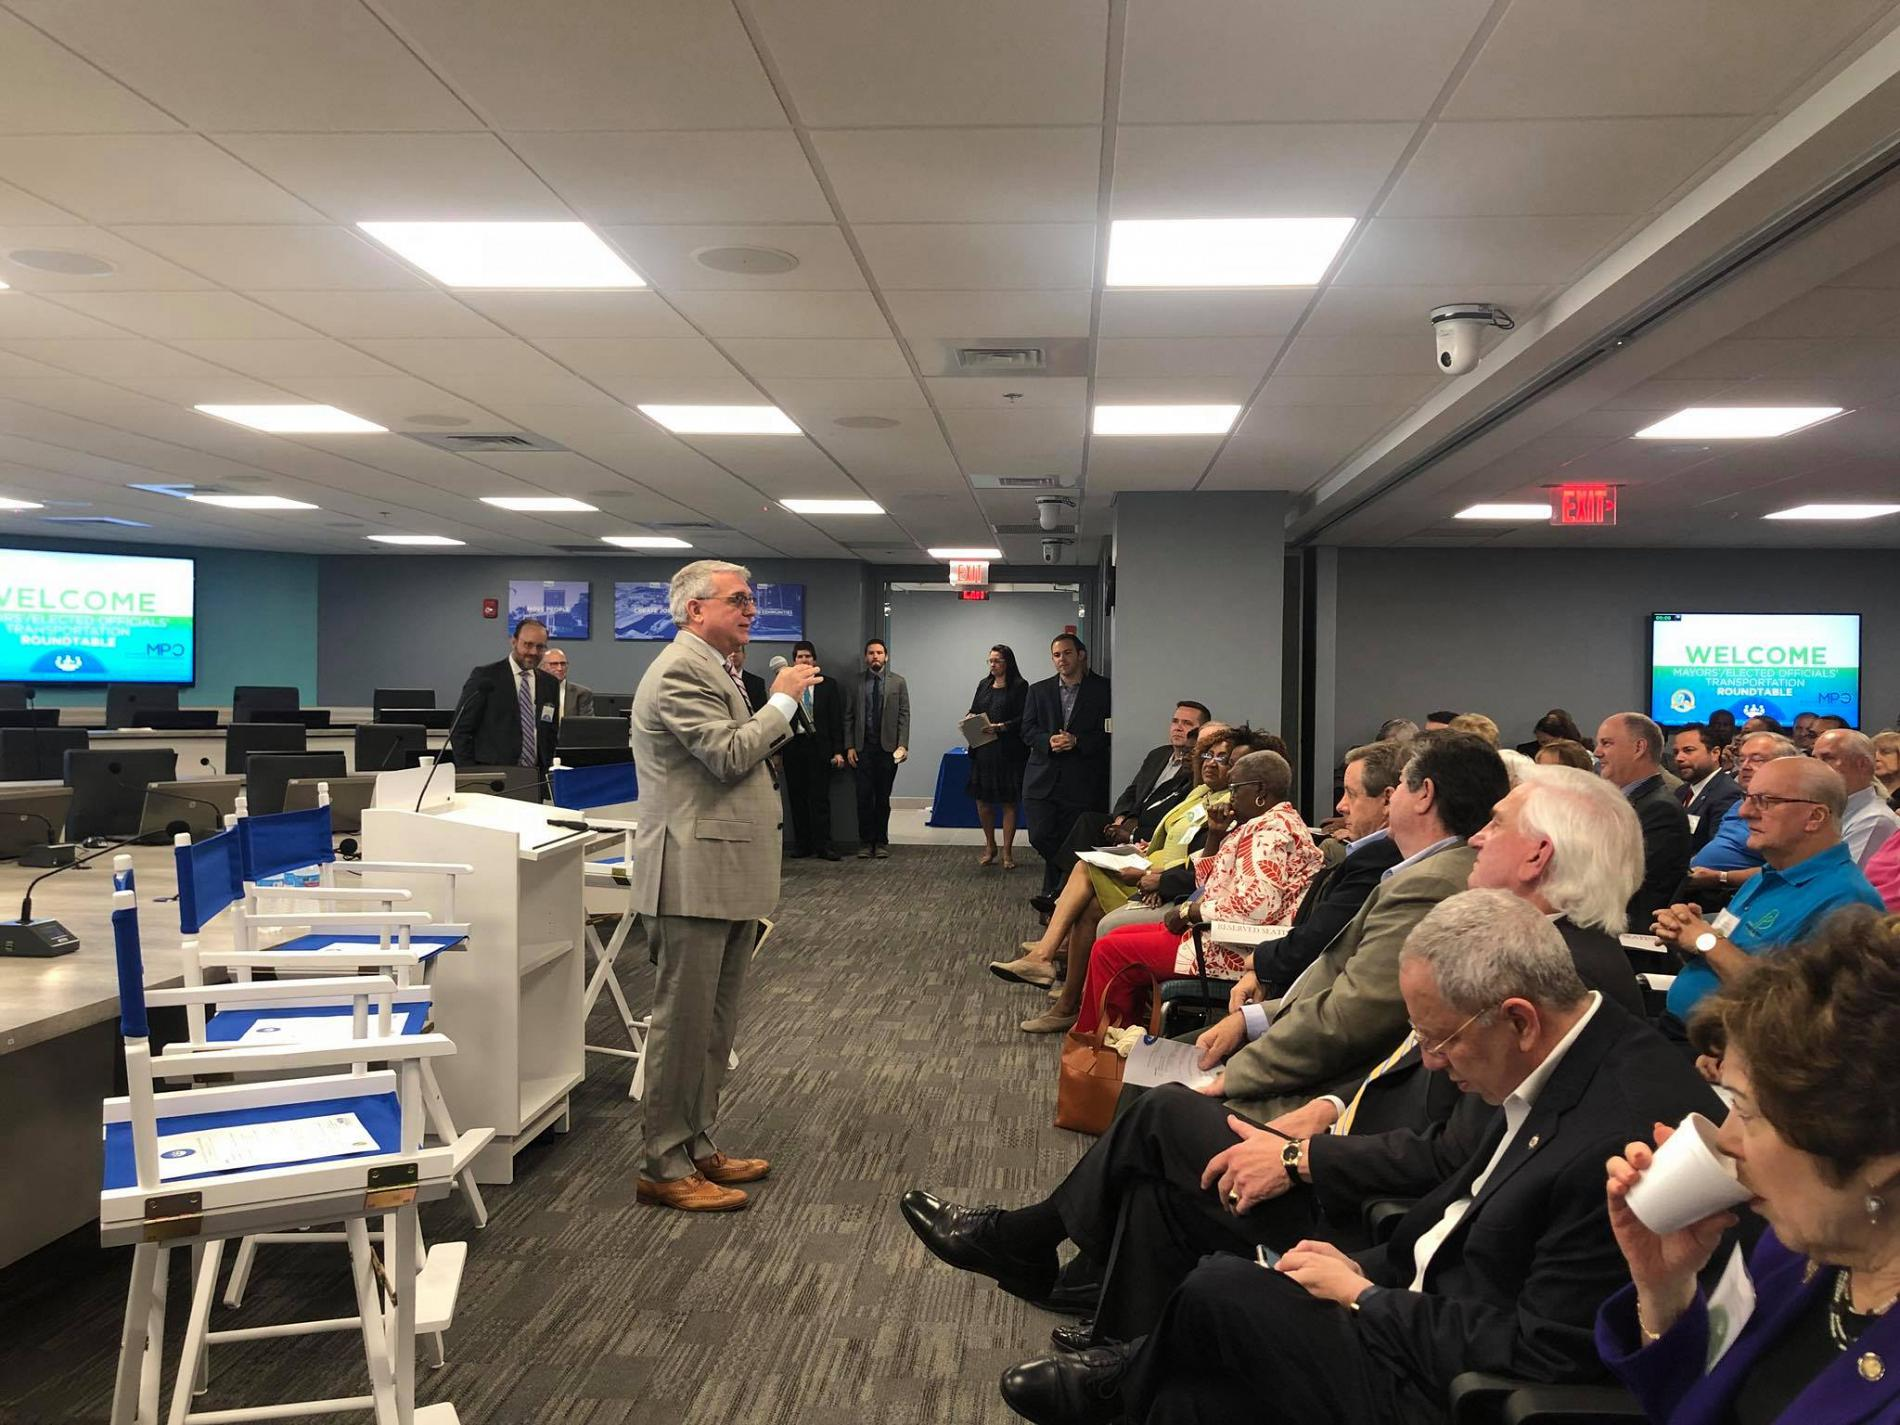 Mayor's/Elected Officials' Roundtable Success